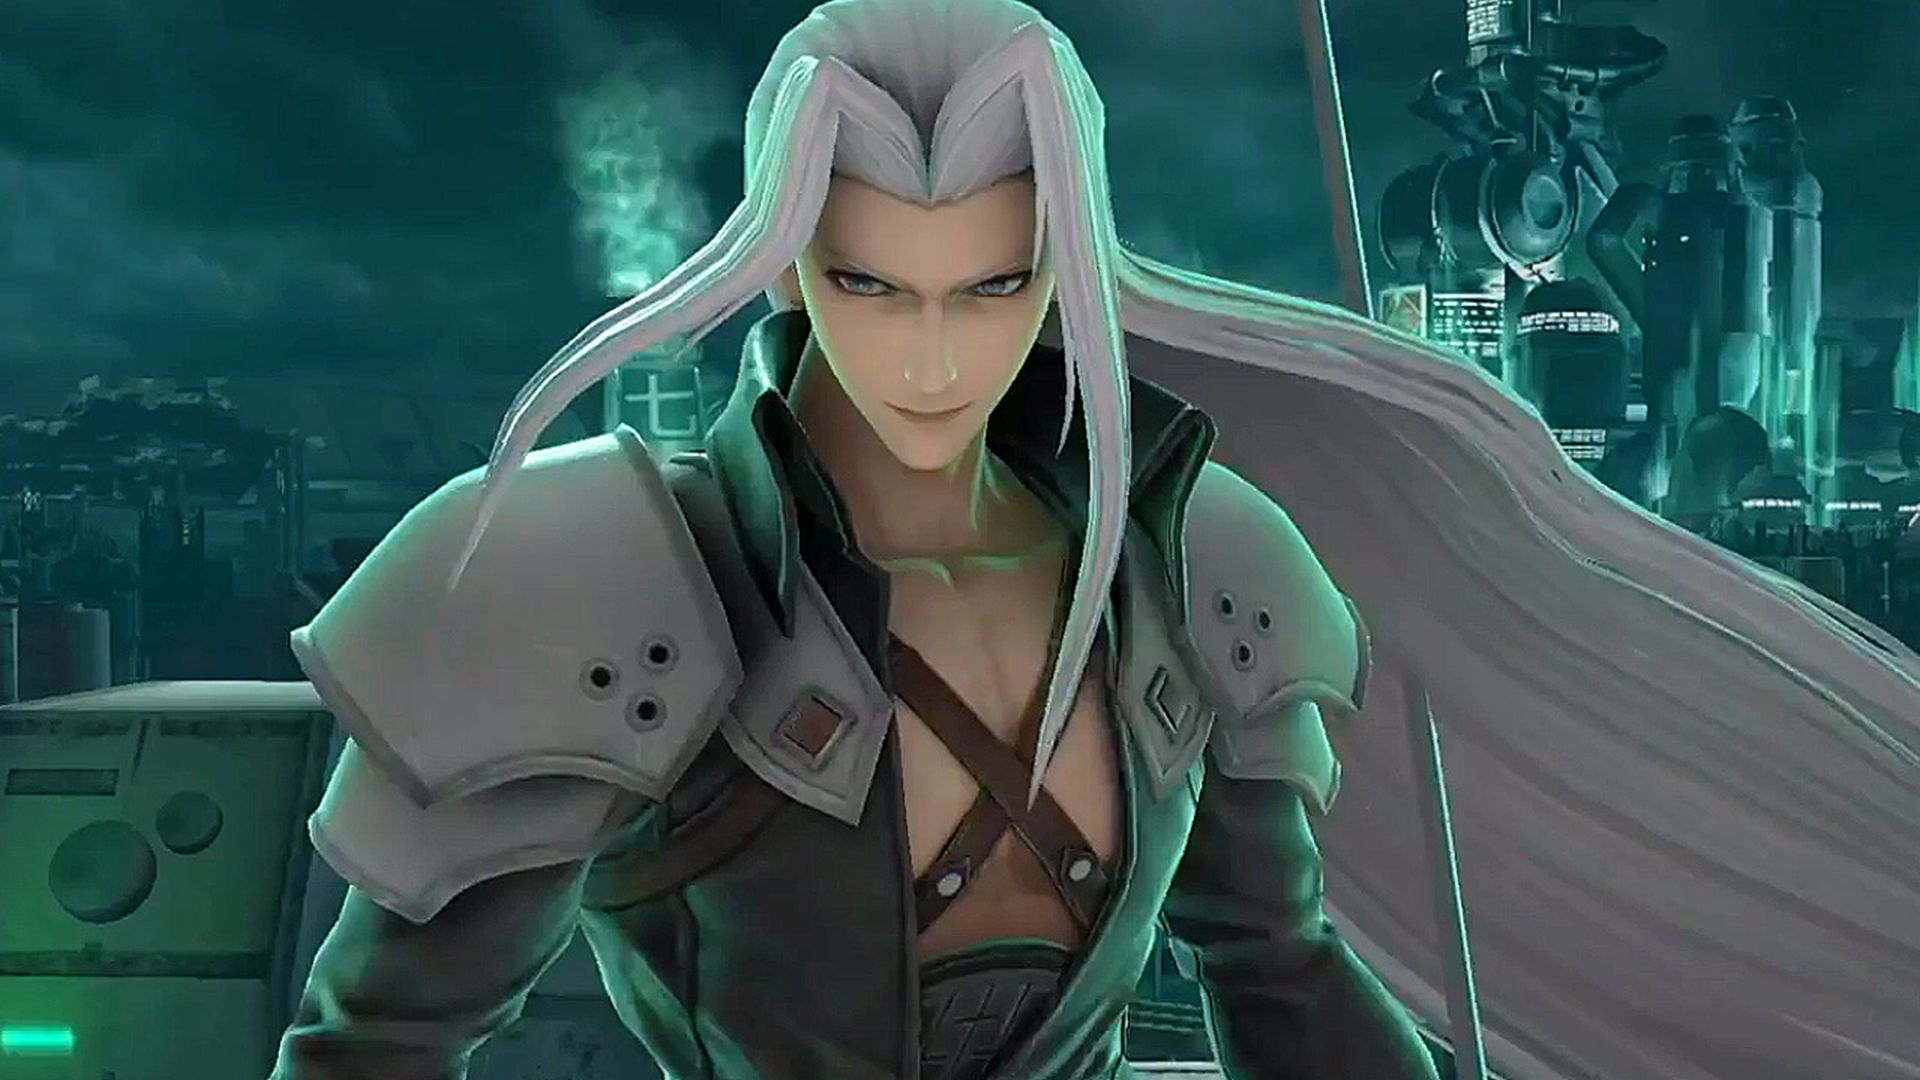 Super Smash Bros. Ultimate - Sephiroth